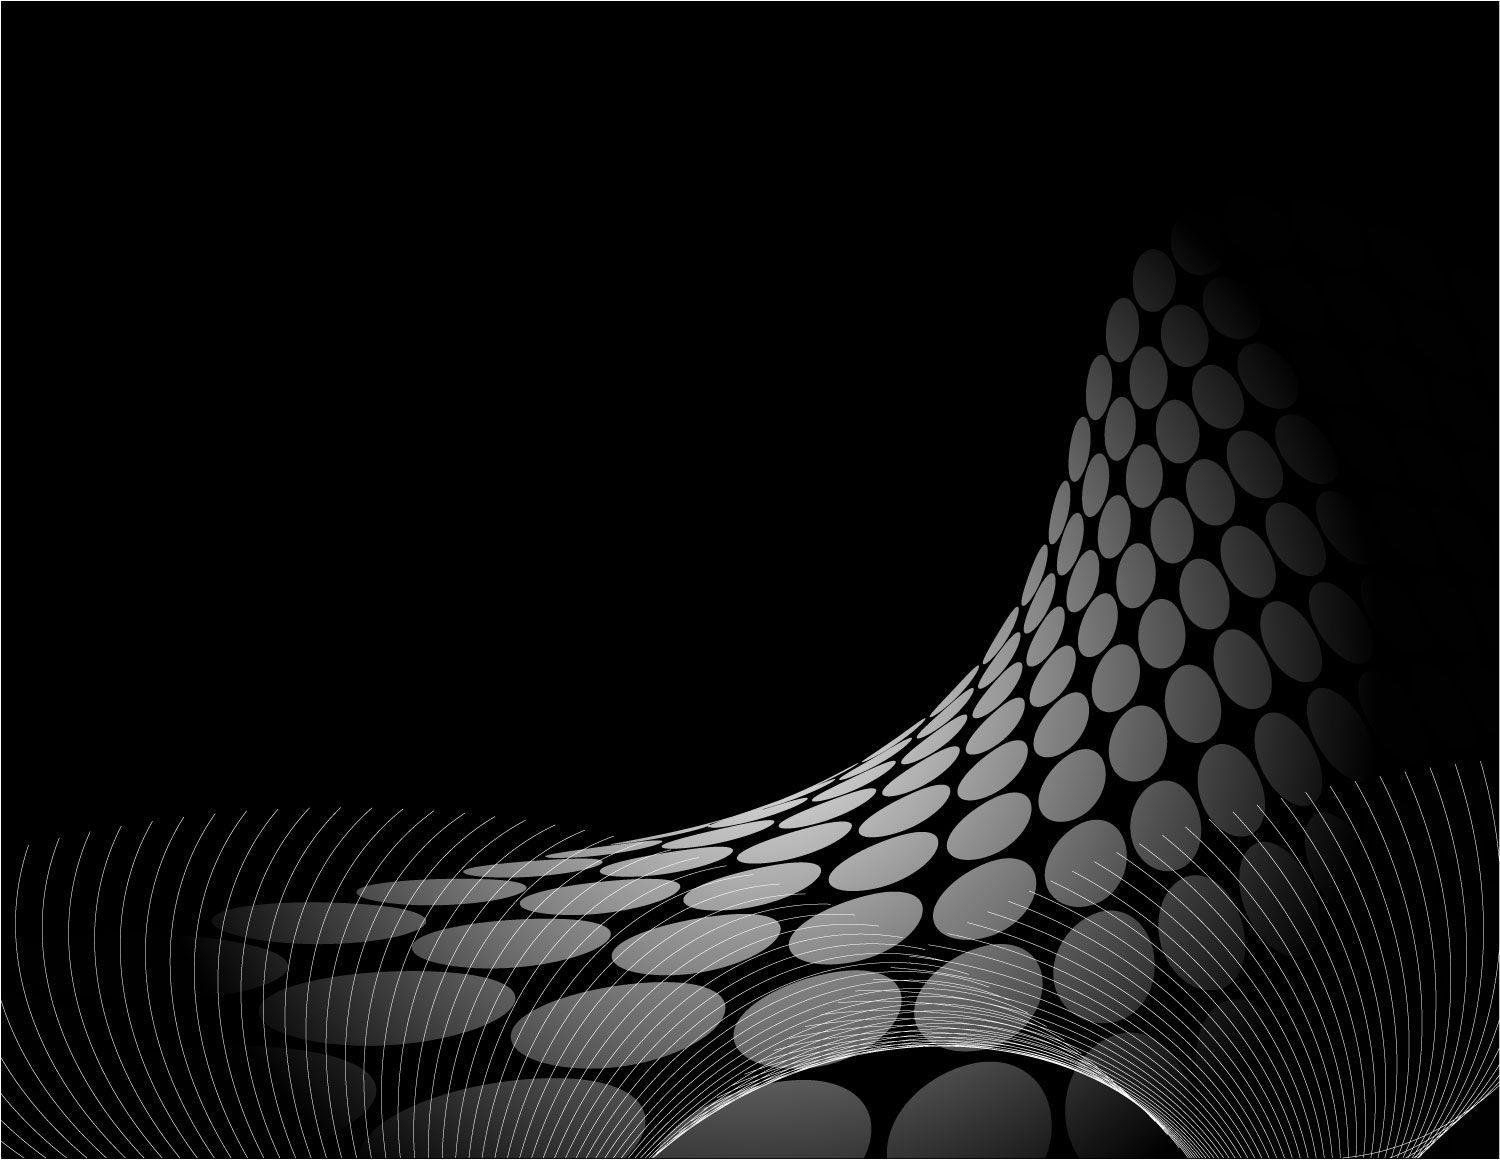 Wallpapers For > Black Abstract Backgrounds